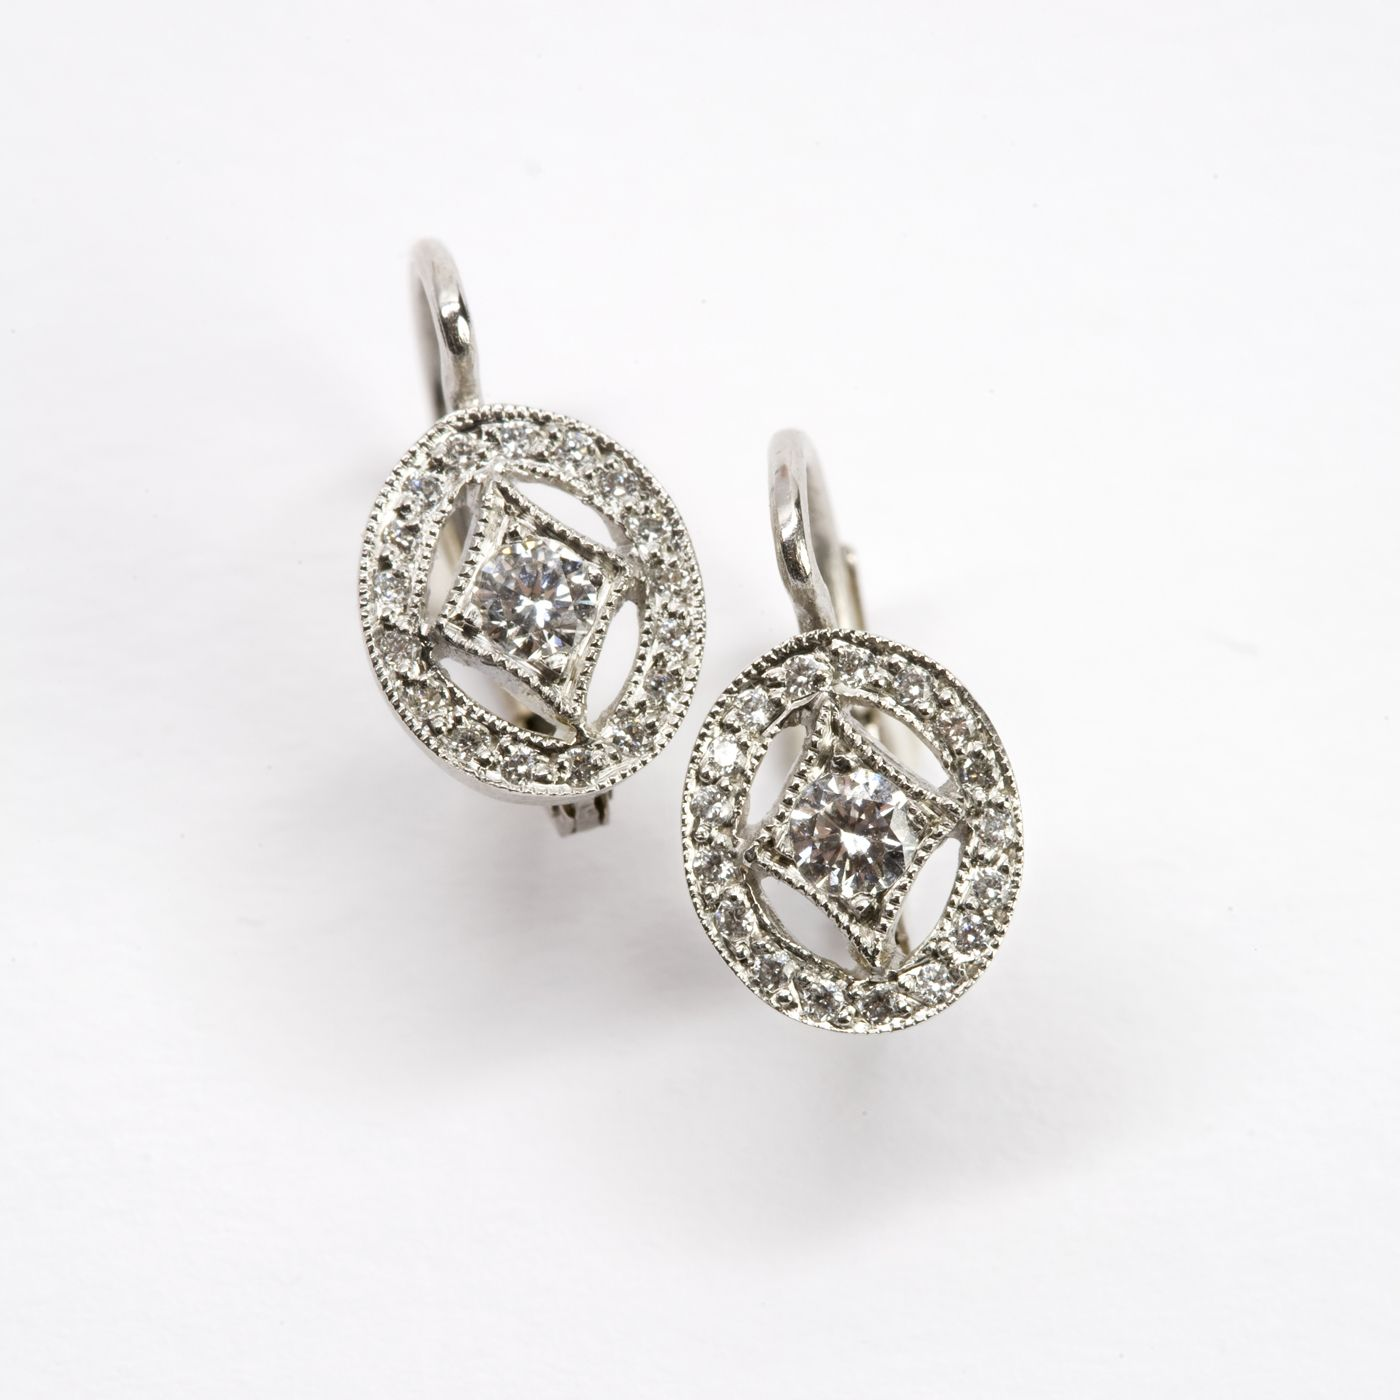 Julia Roberts Lancôme Ad Earrings Oval Frame From Cathy Waterman In Platinum And